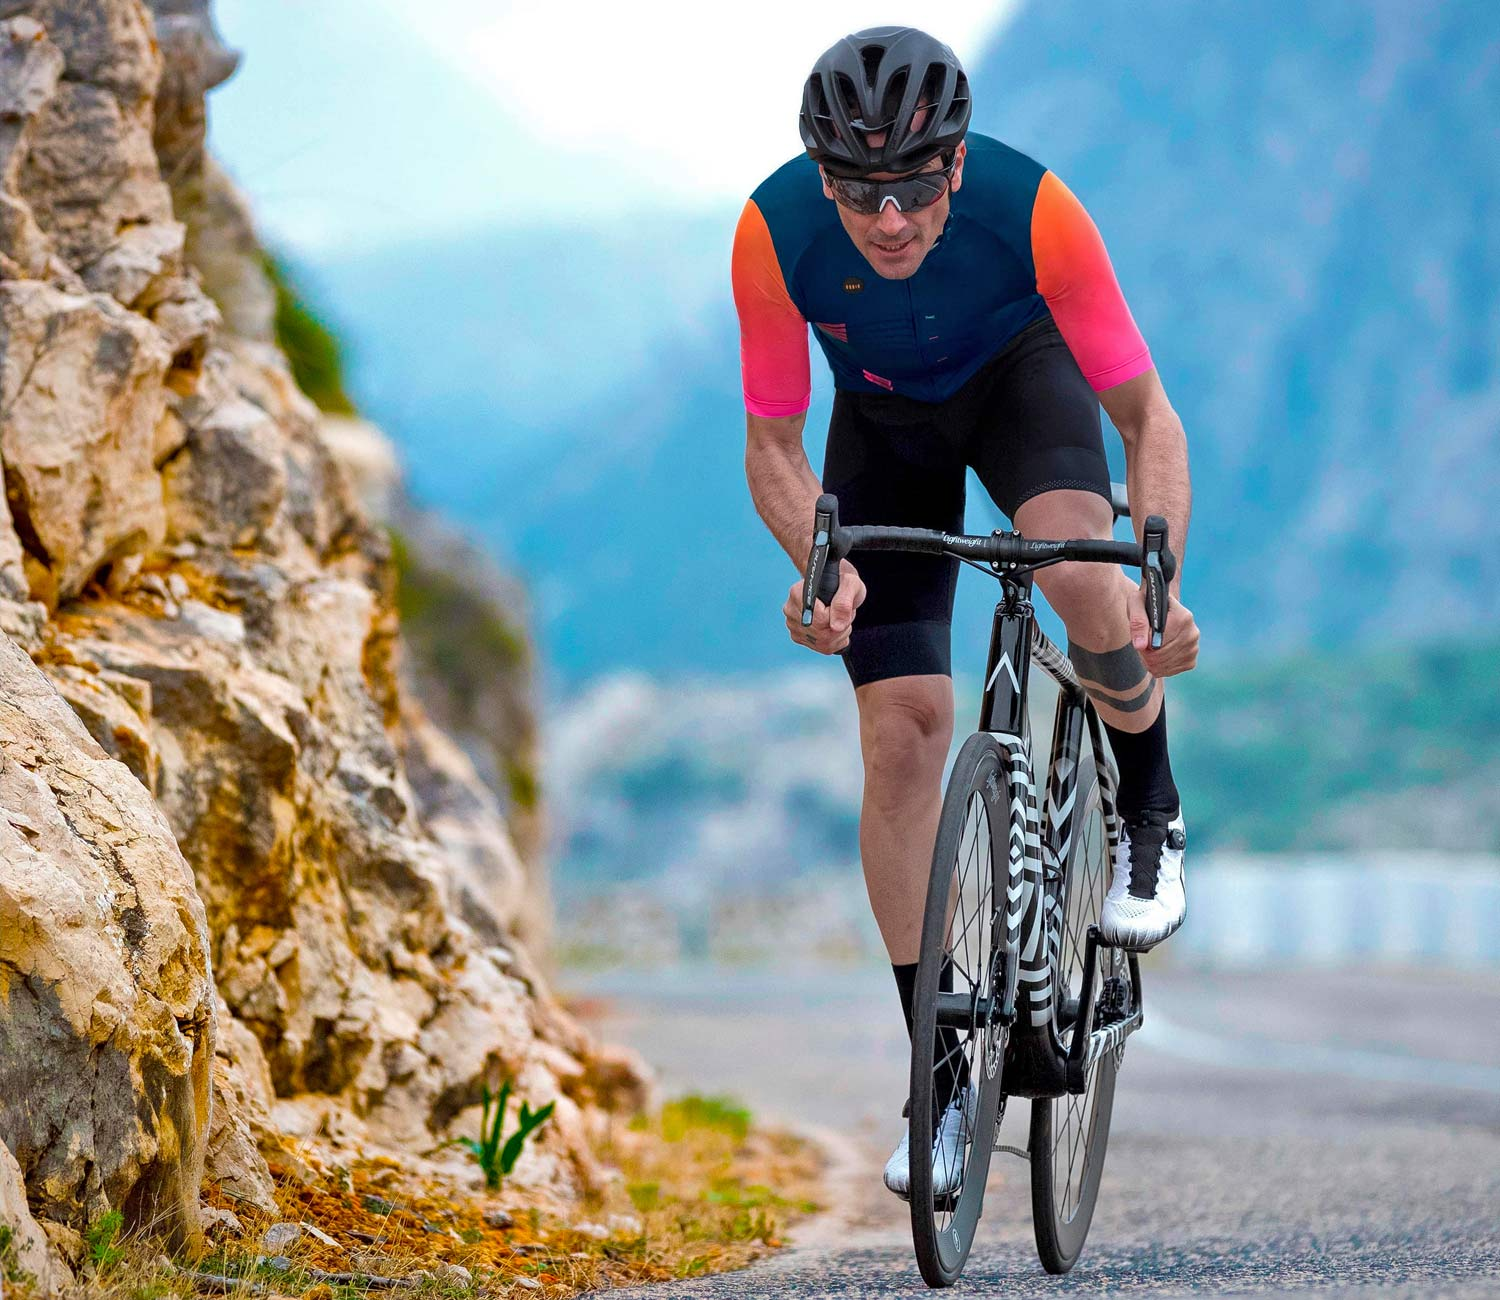 A_bikes, a new carbon road bike of Basso and Contador, Gobik tease